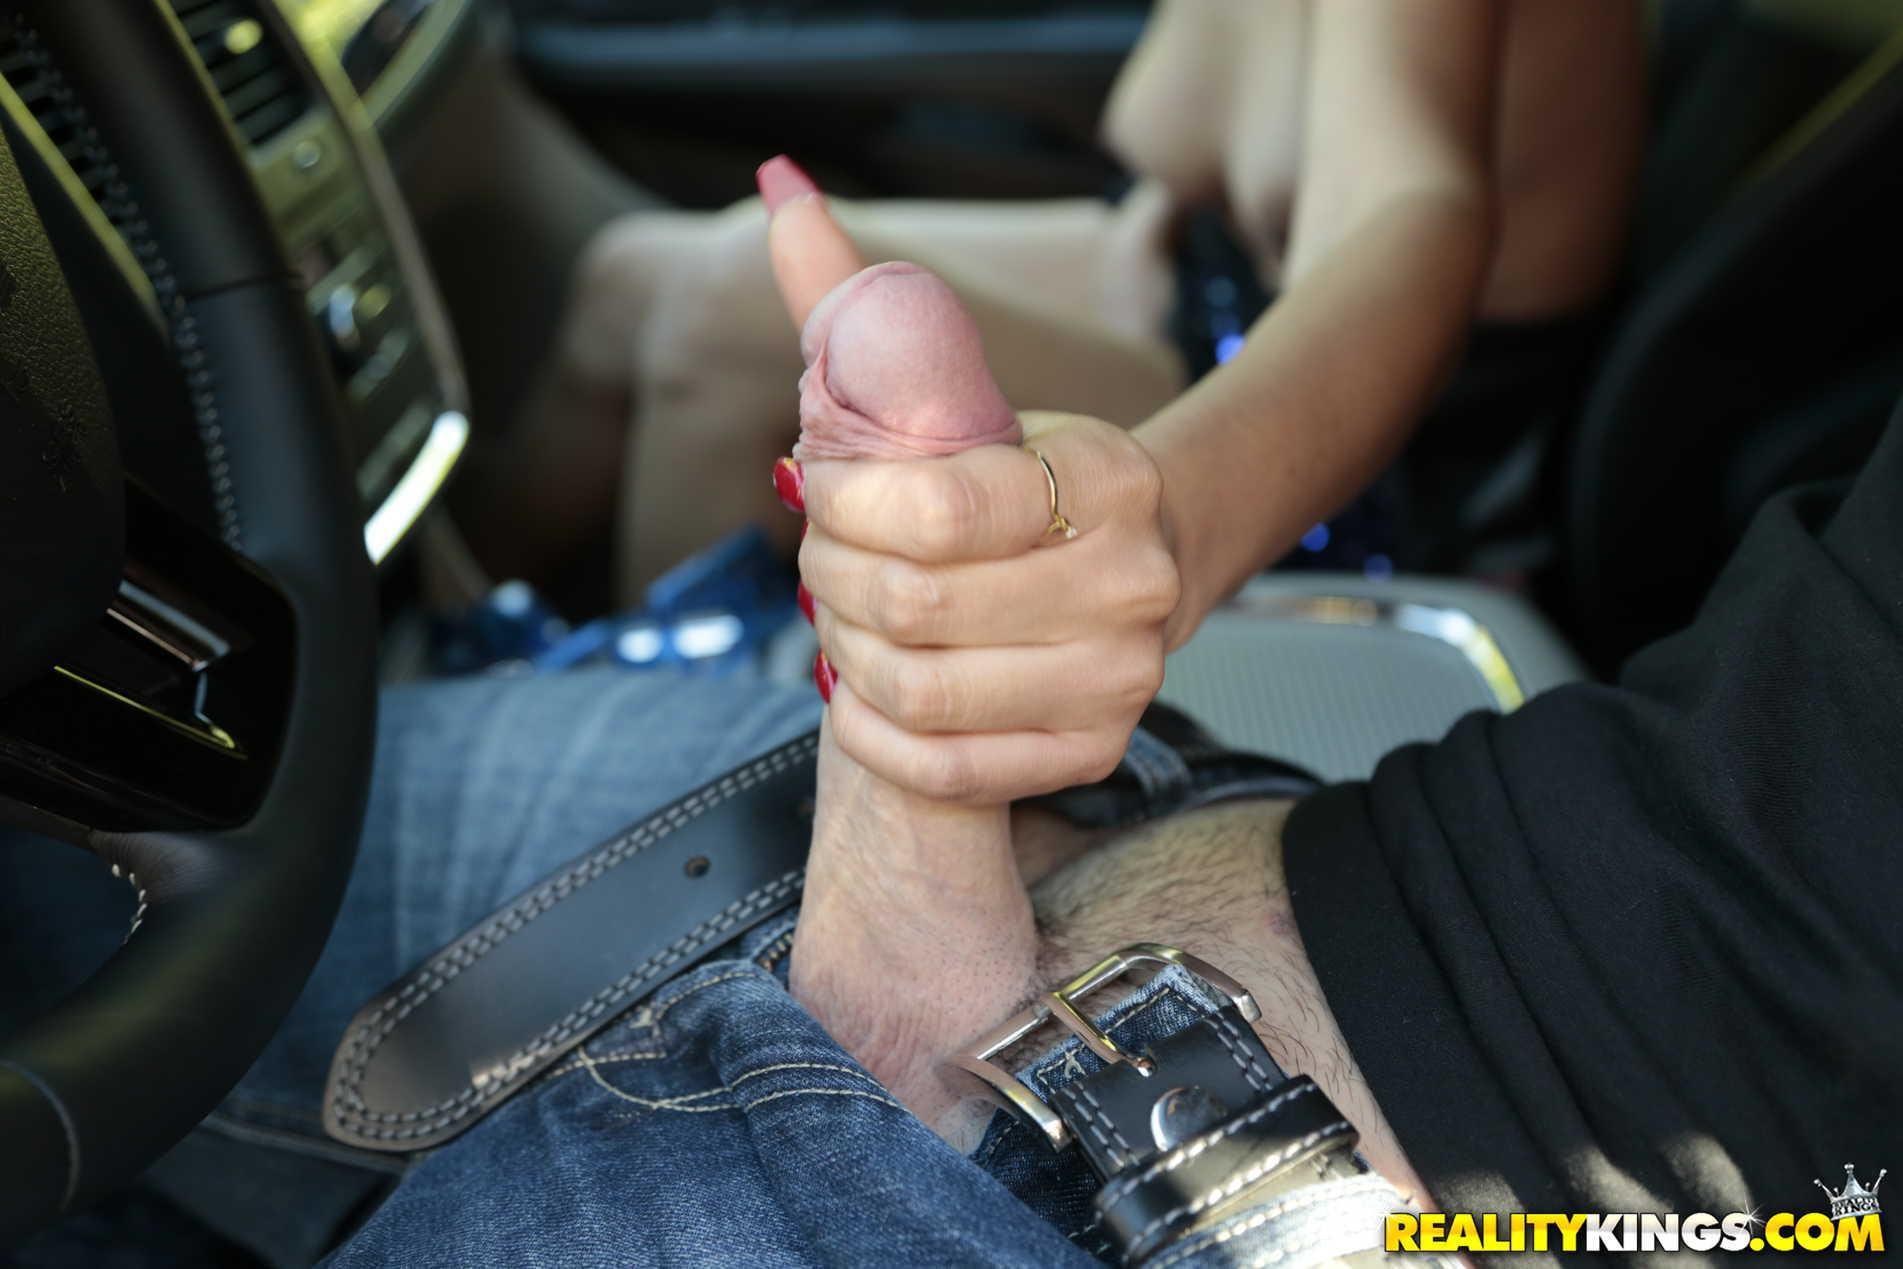 upskirt tease by busty latina brunette in the early afternoon #7